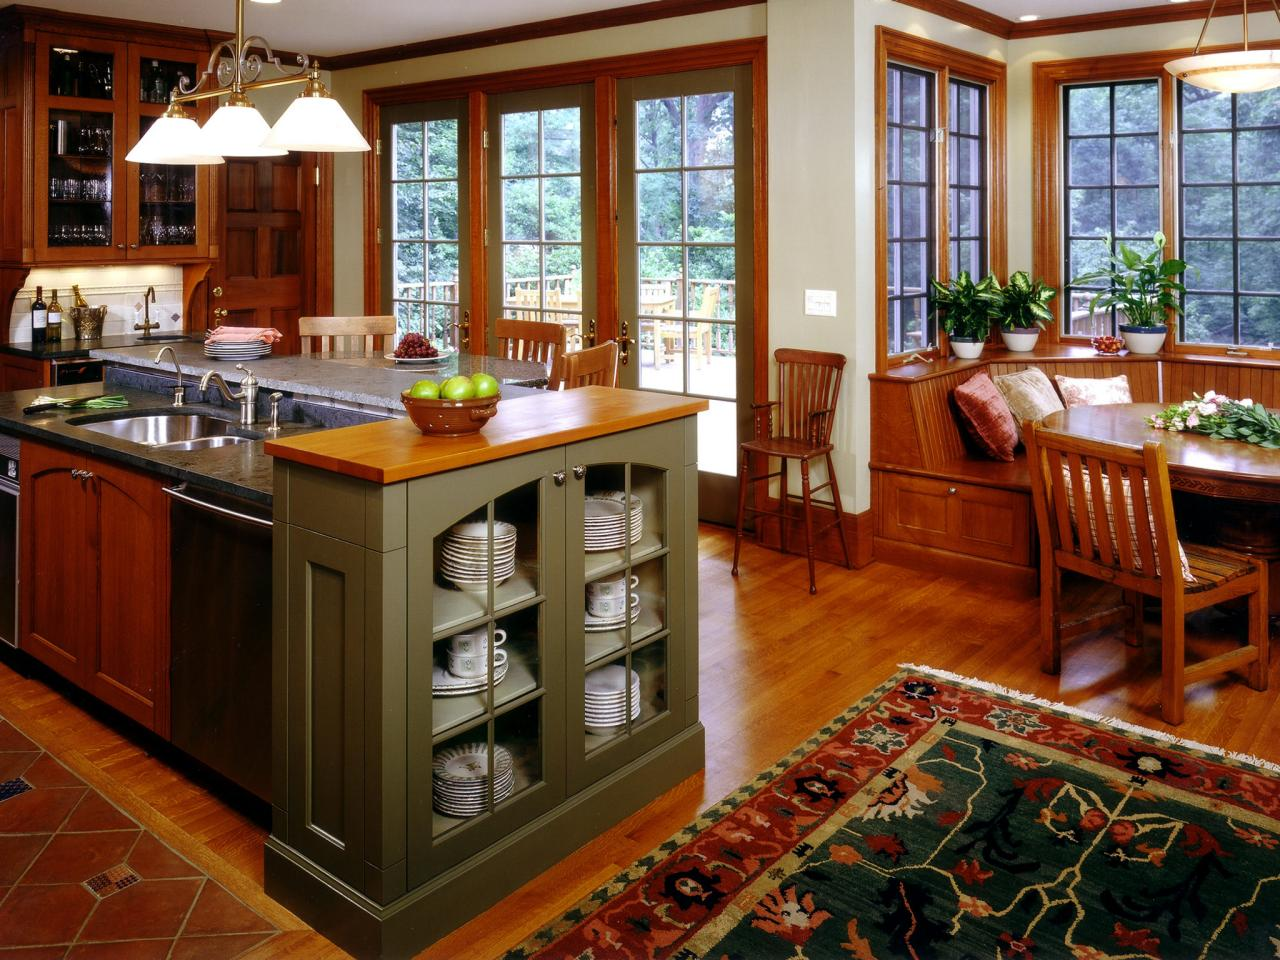 craftsman style kitchen cabinets - In Style Kitchen Cabinets